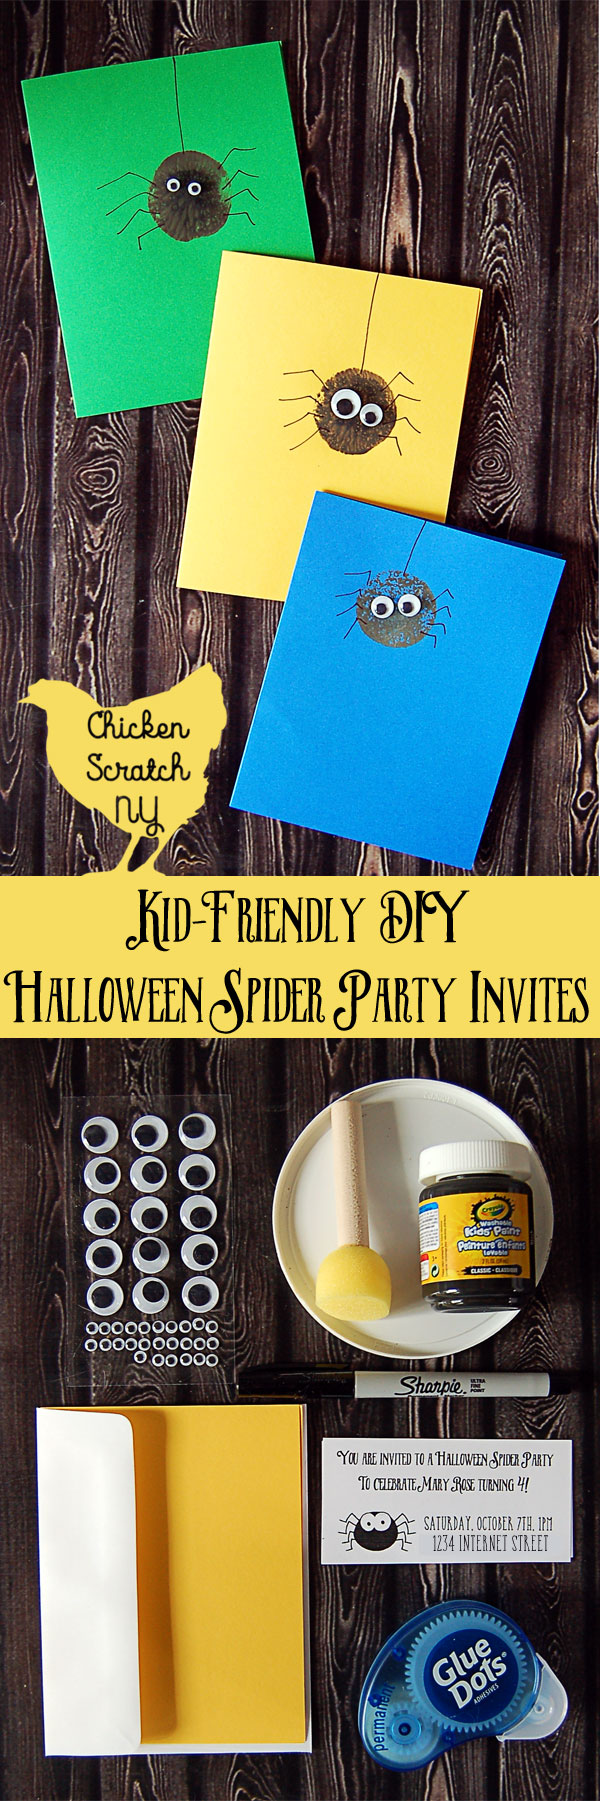 Halloween Party, Kid-friendly, spider party, party invitation, DIY